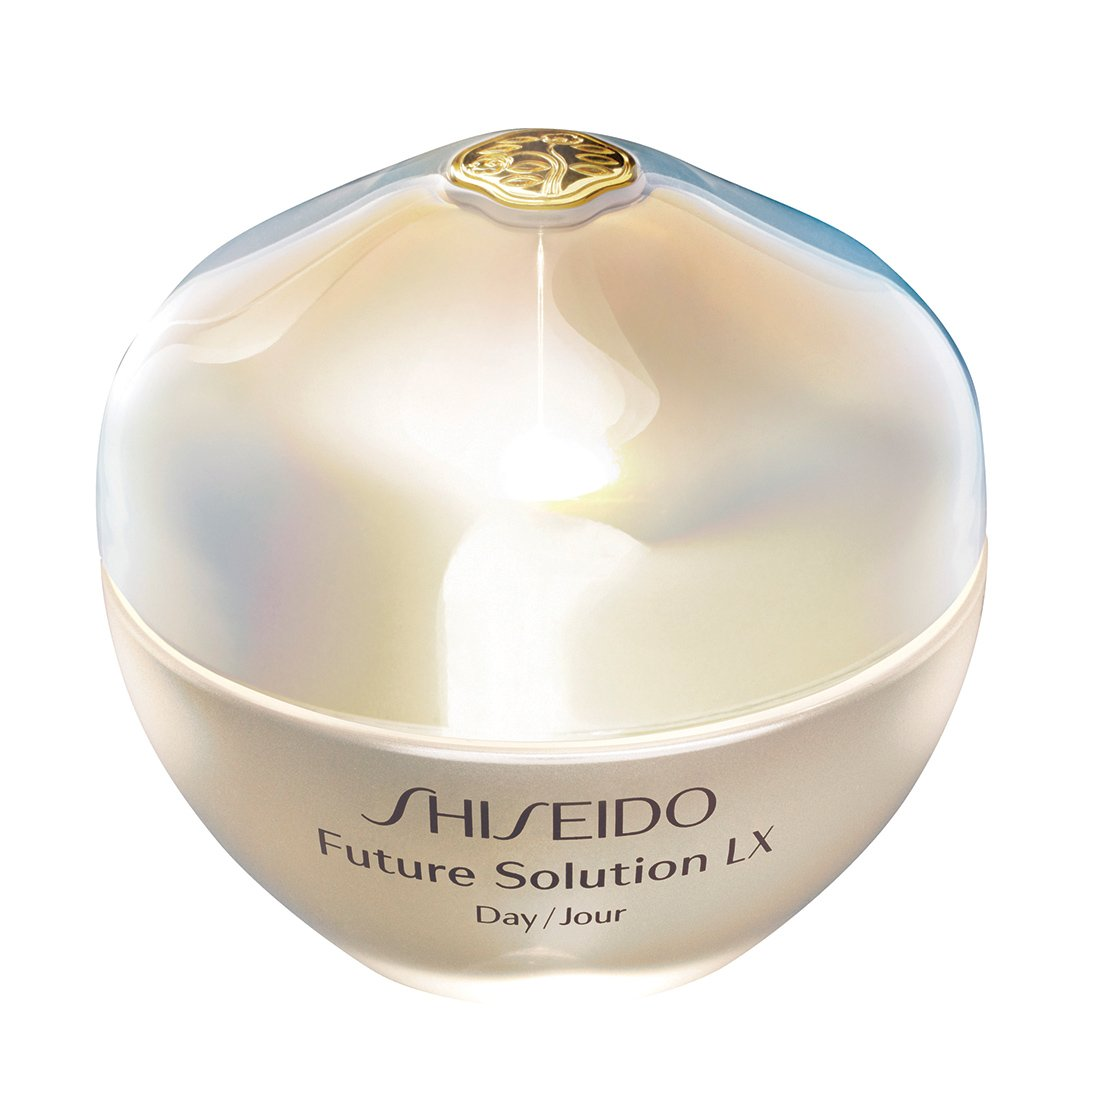 Shiseido - Future Solution Lx - Crème Protectrice Totale SPF15 50 ml